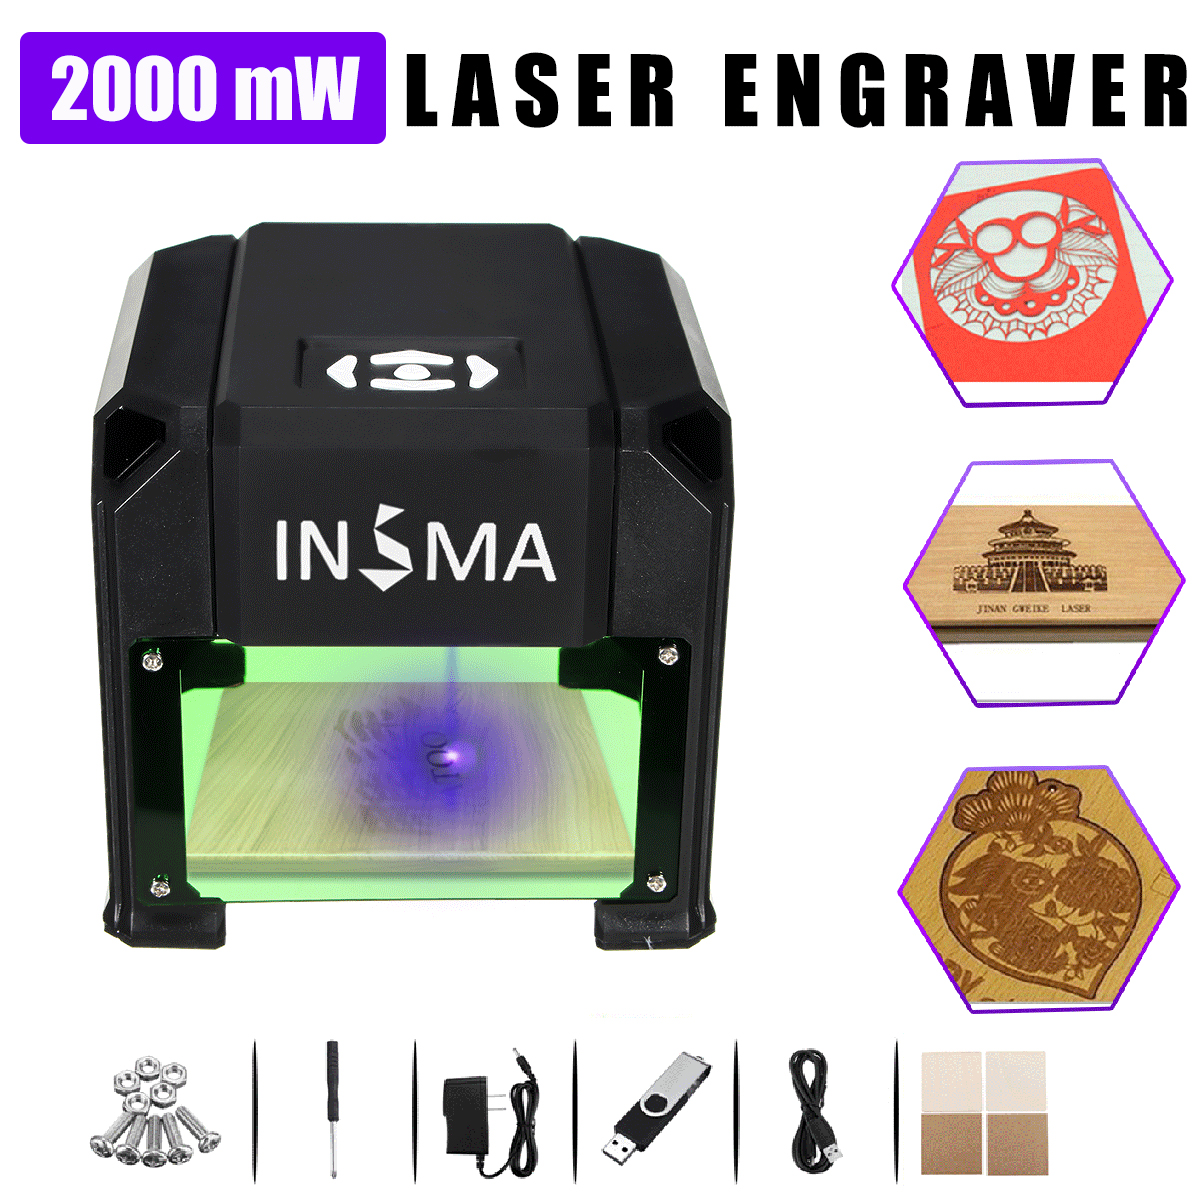 все цены на 2000 mW USB Desktop Laser Engraver 80x80mm Engraving Range DIY Logo Mark Printer CNC Cutter Laser Engraving Machine Home Use онлайн